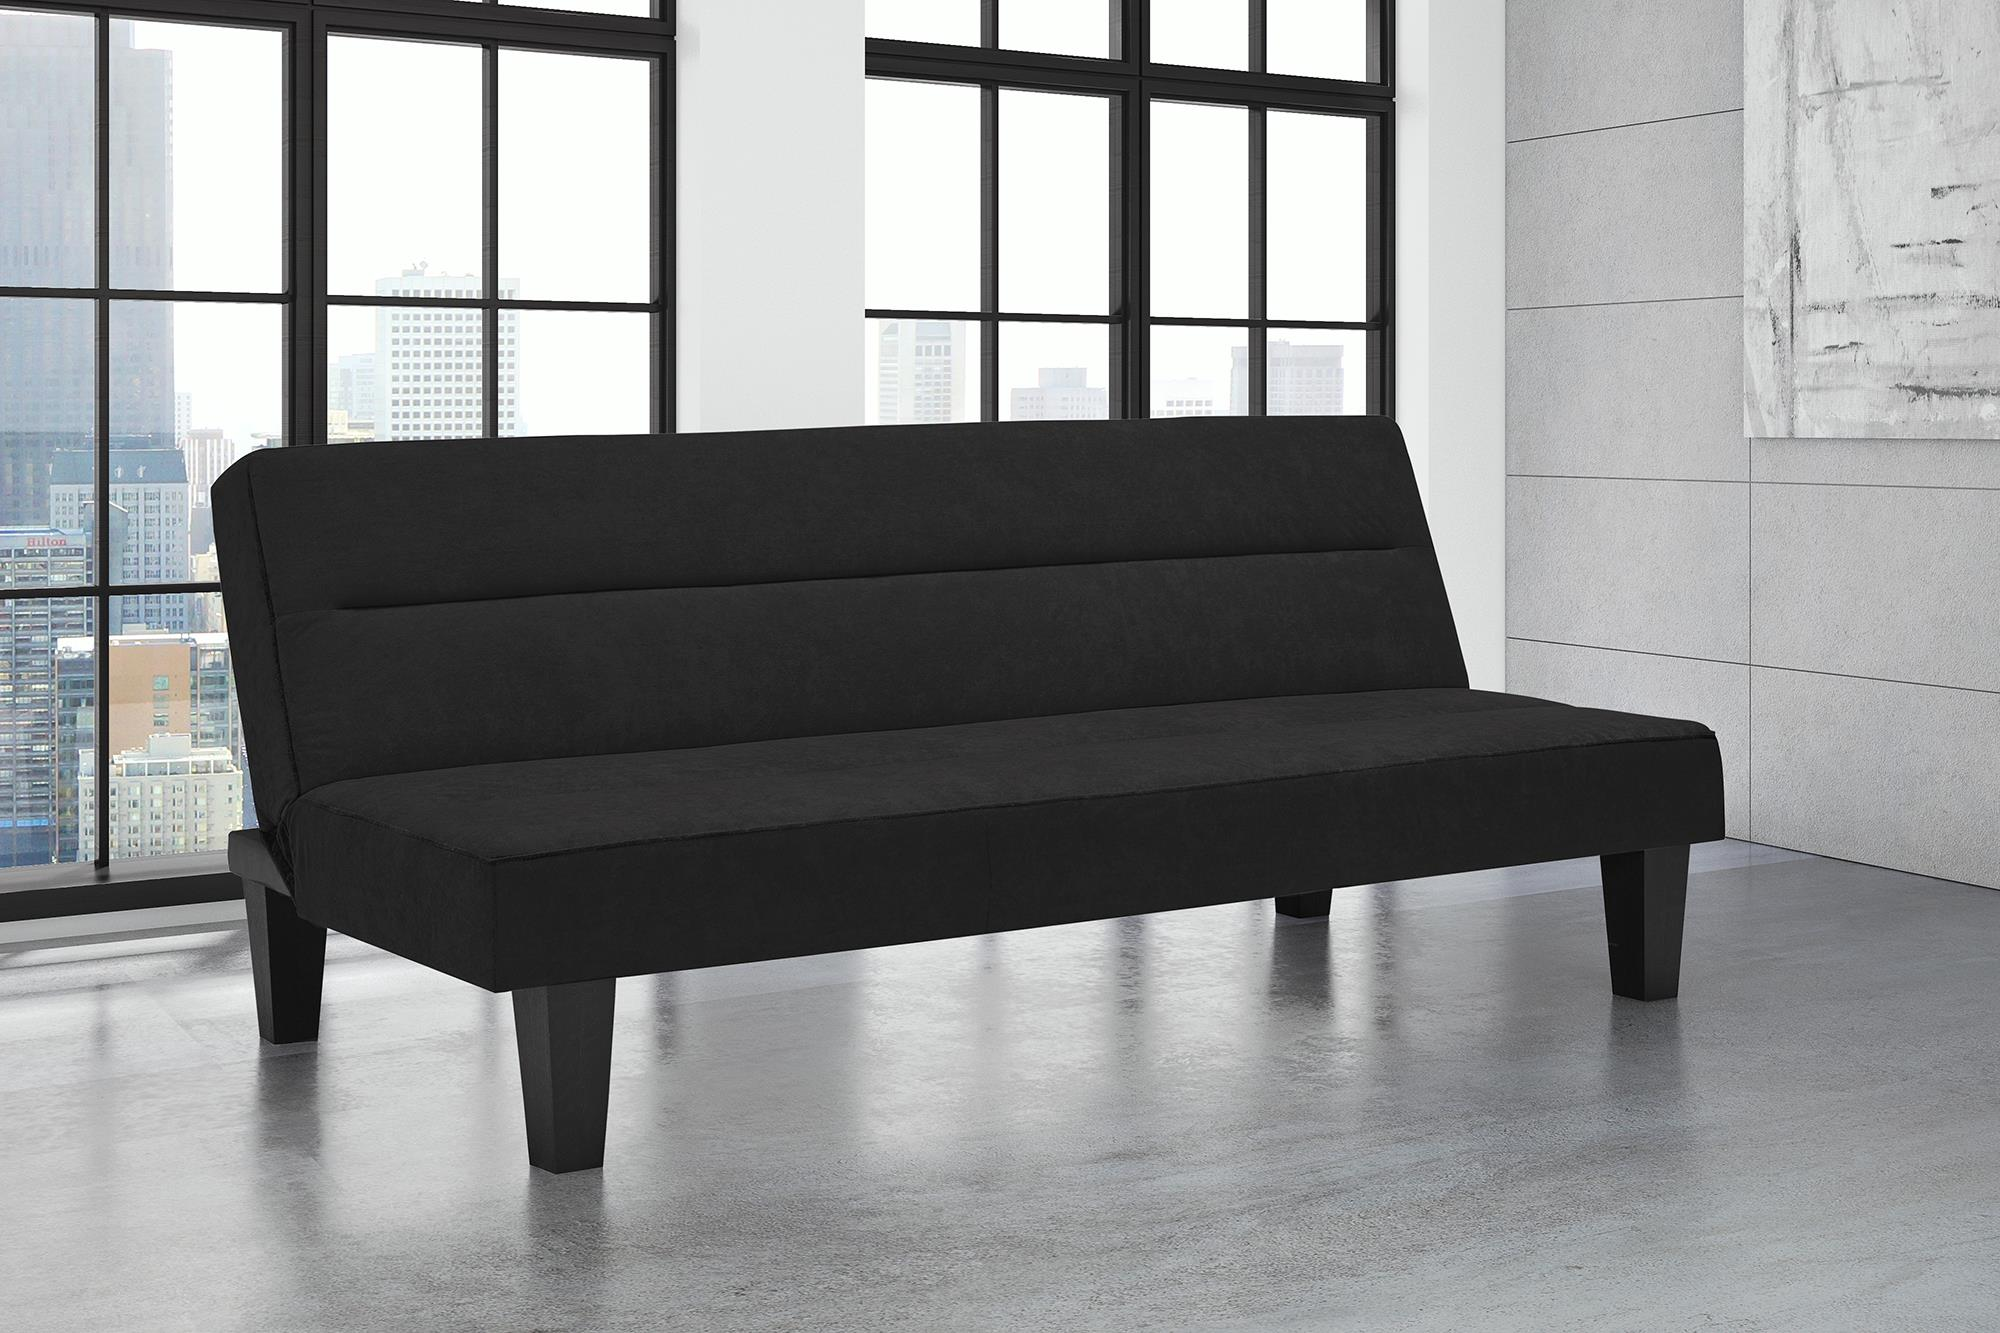 Kebo Futon Sofa Bed, Multiple Colors | eBay